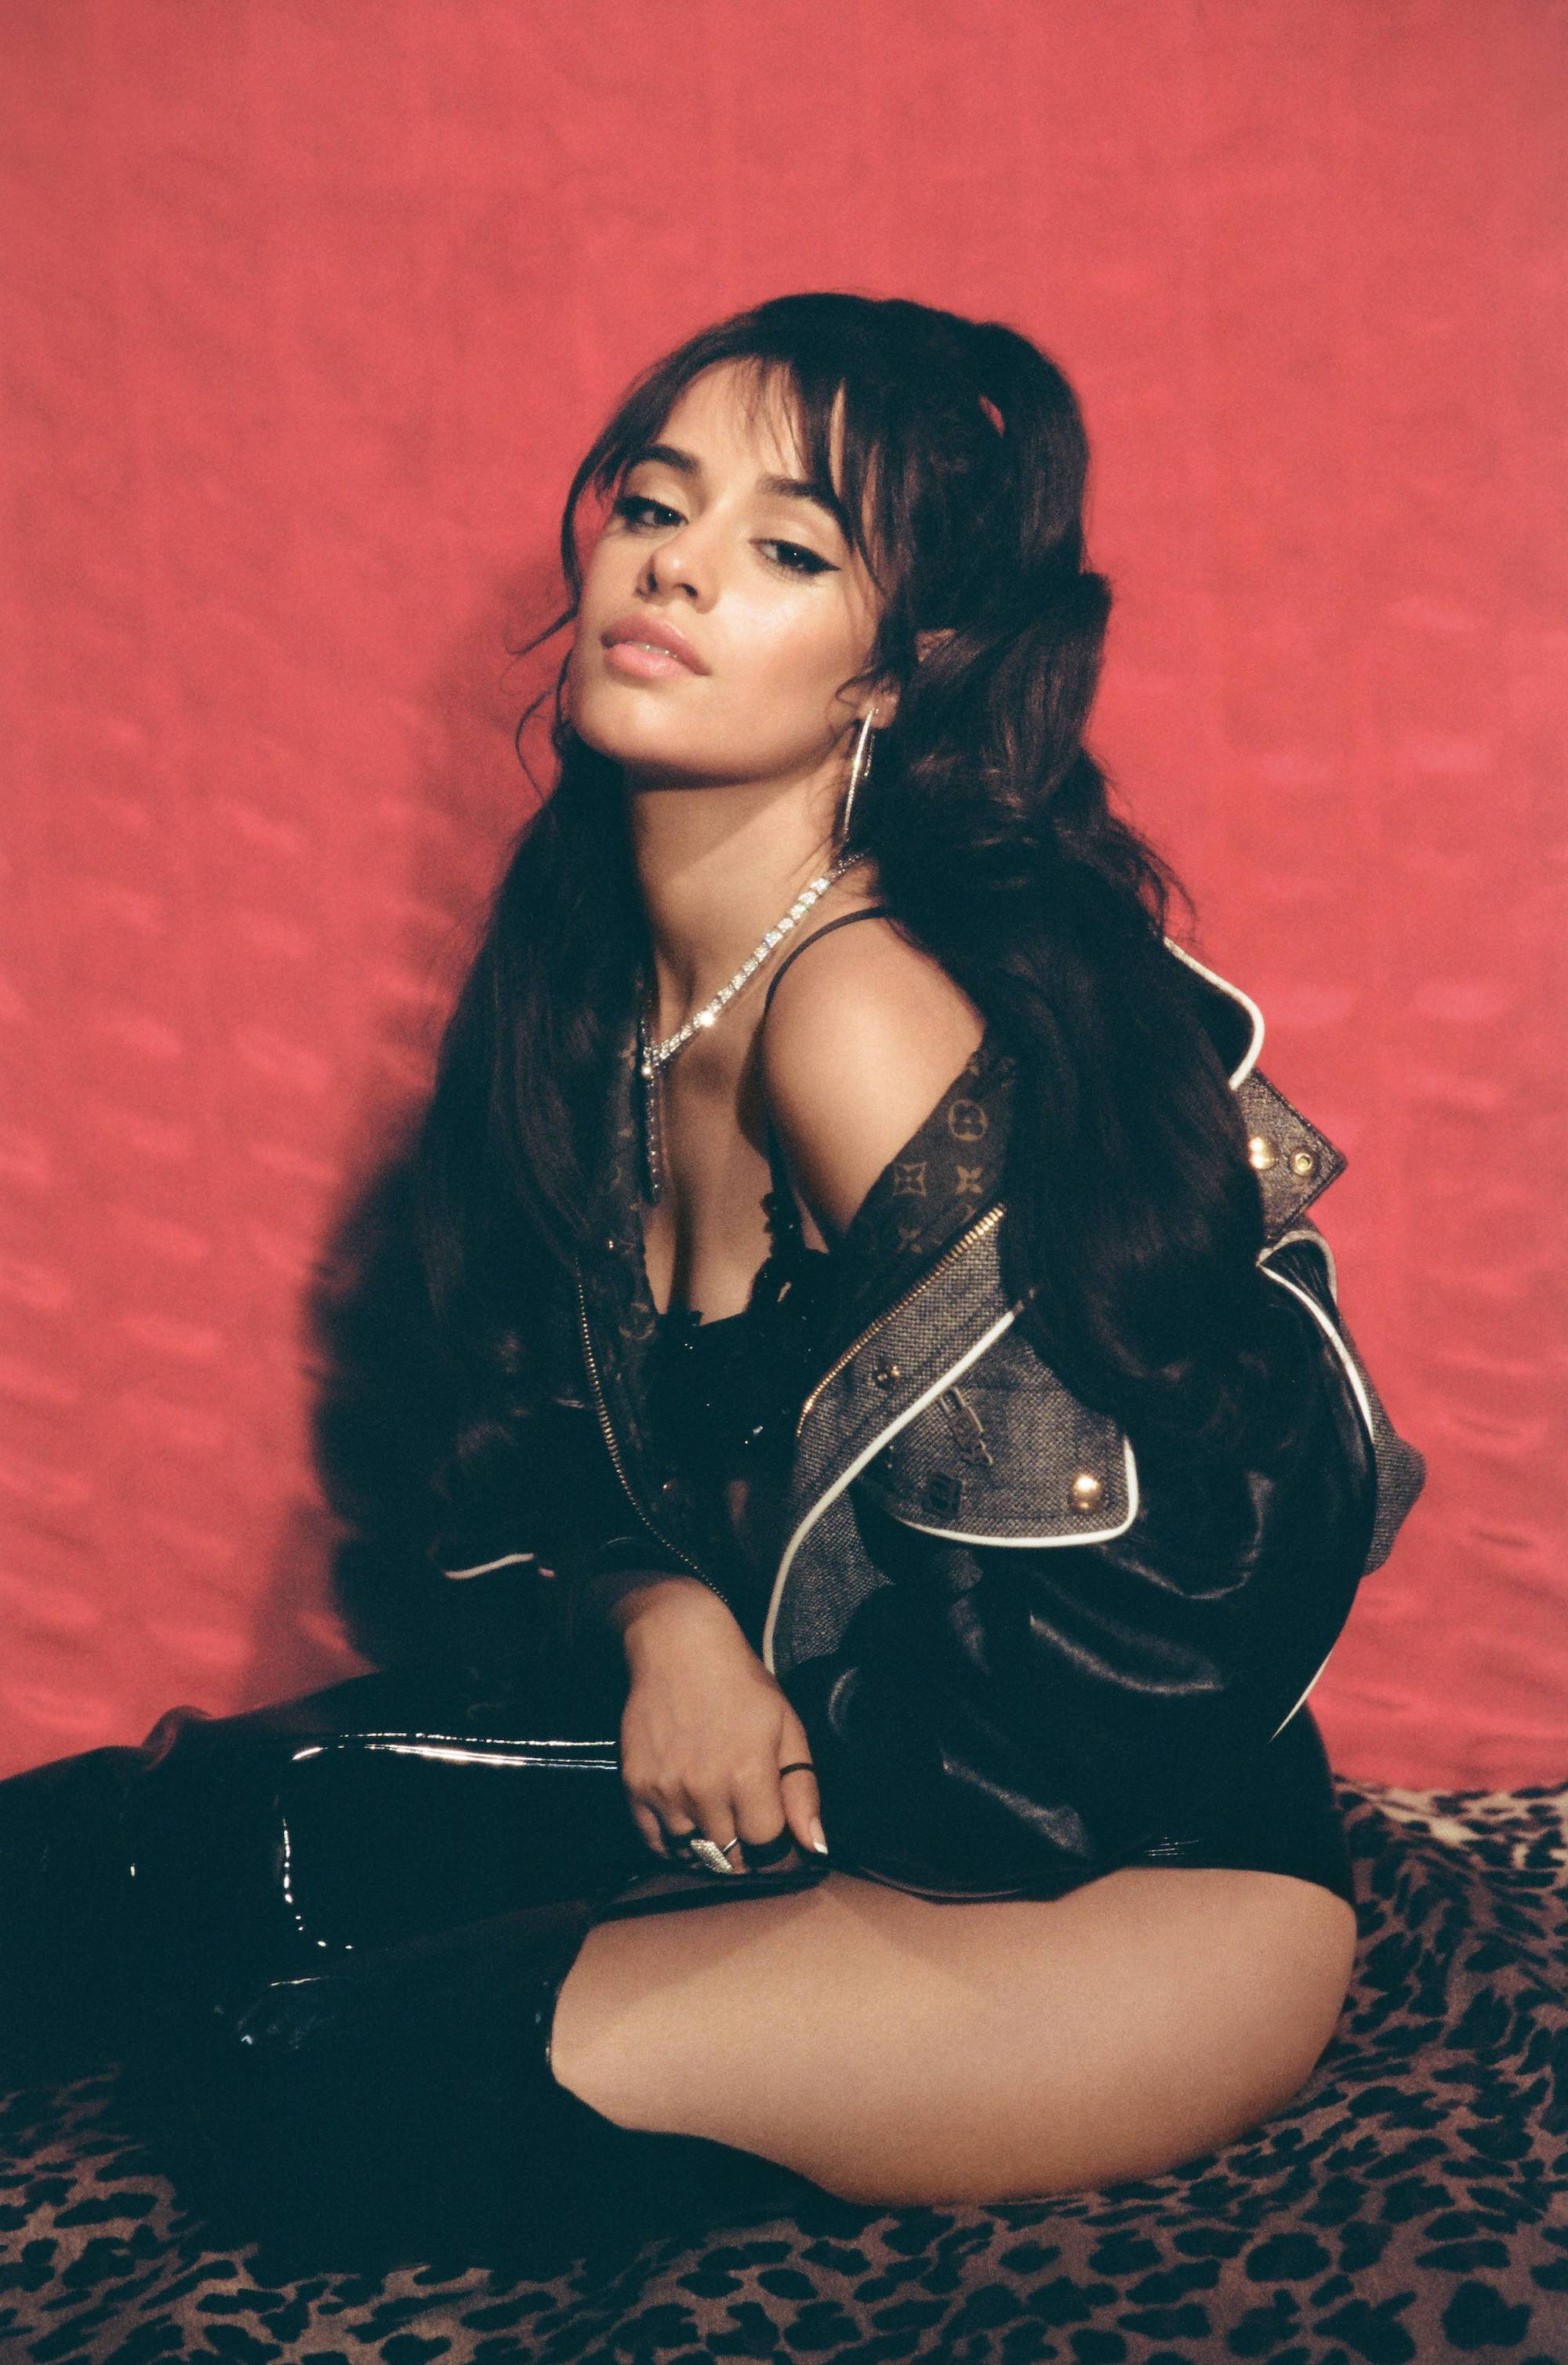 Wonderland Autumn 19 issue interview Camila Cabello leather jacket